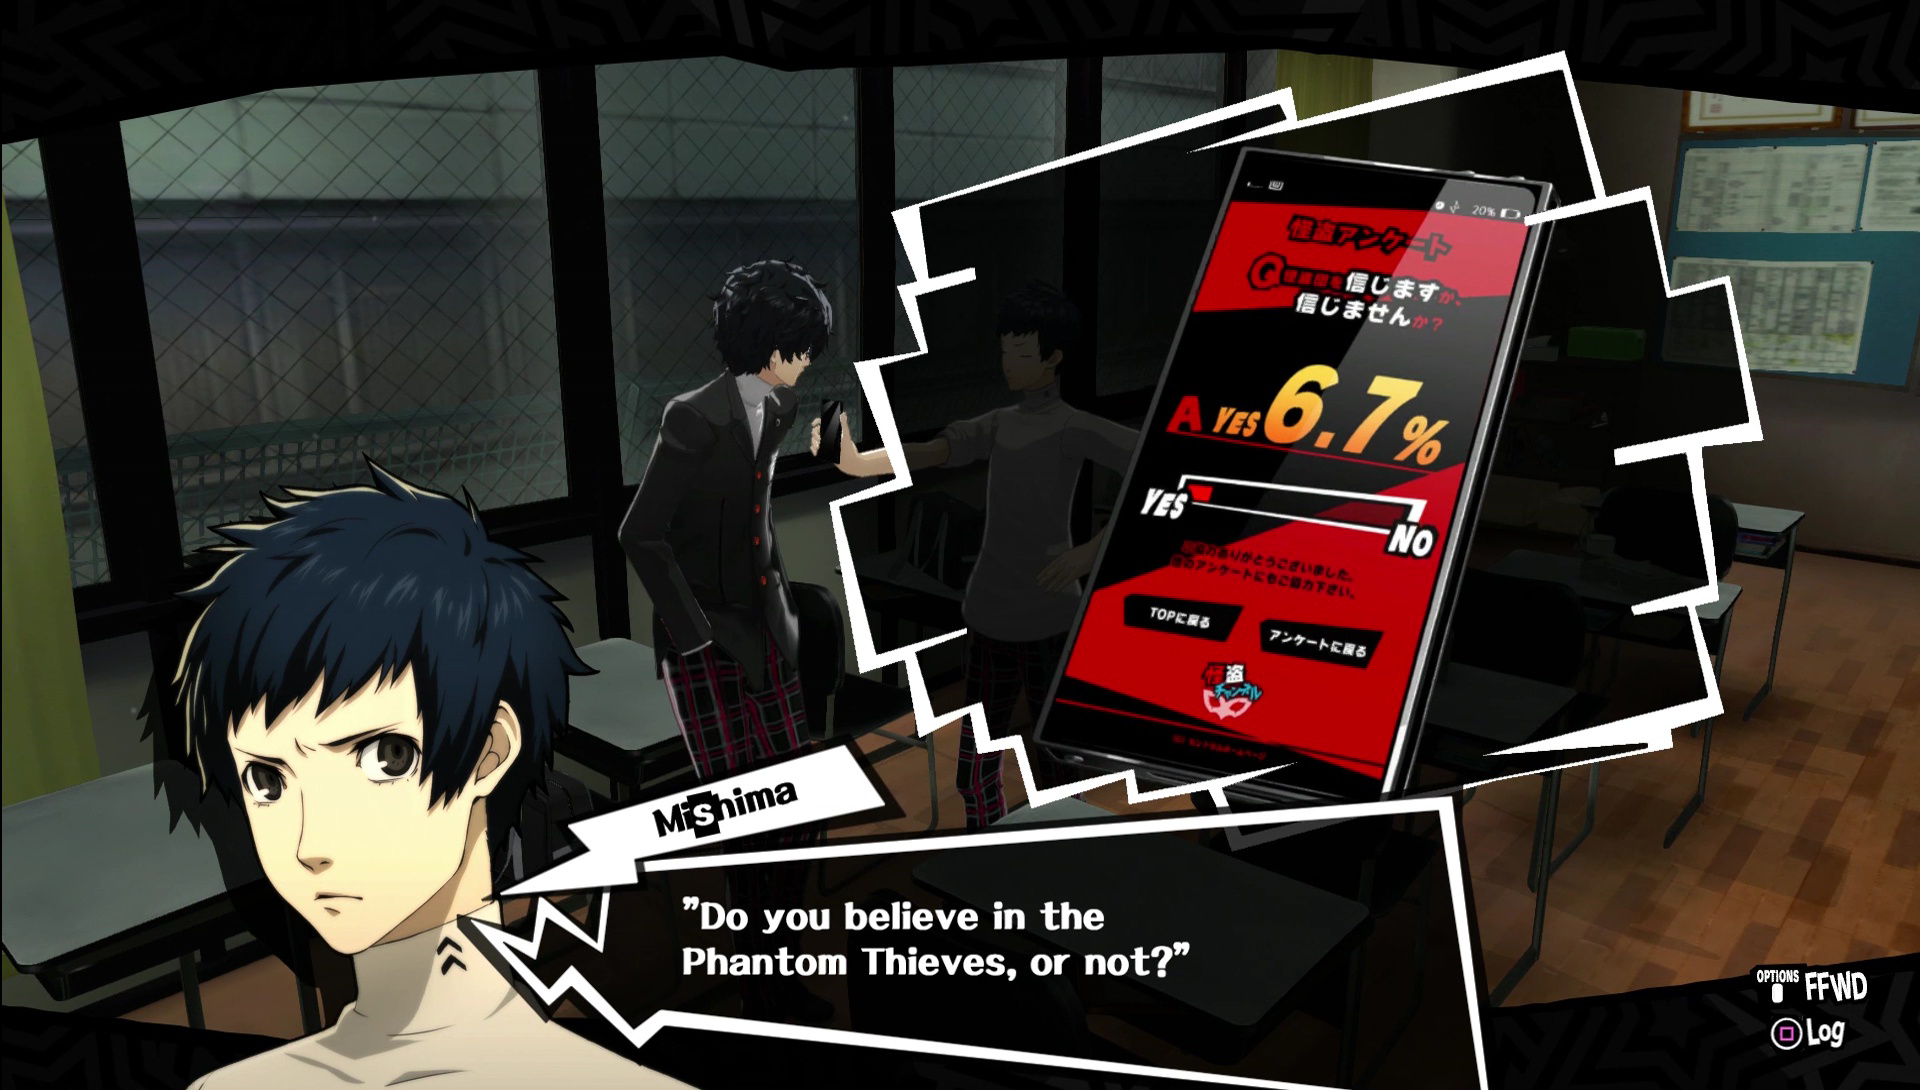 Image result for phantom thieves merchandise in the game